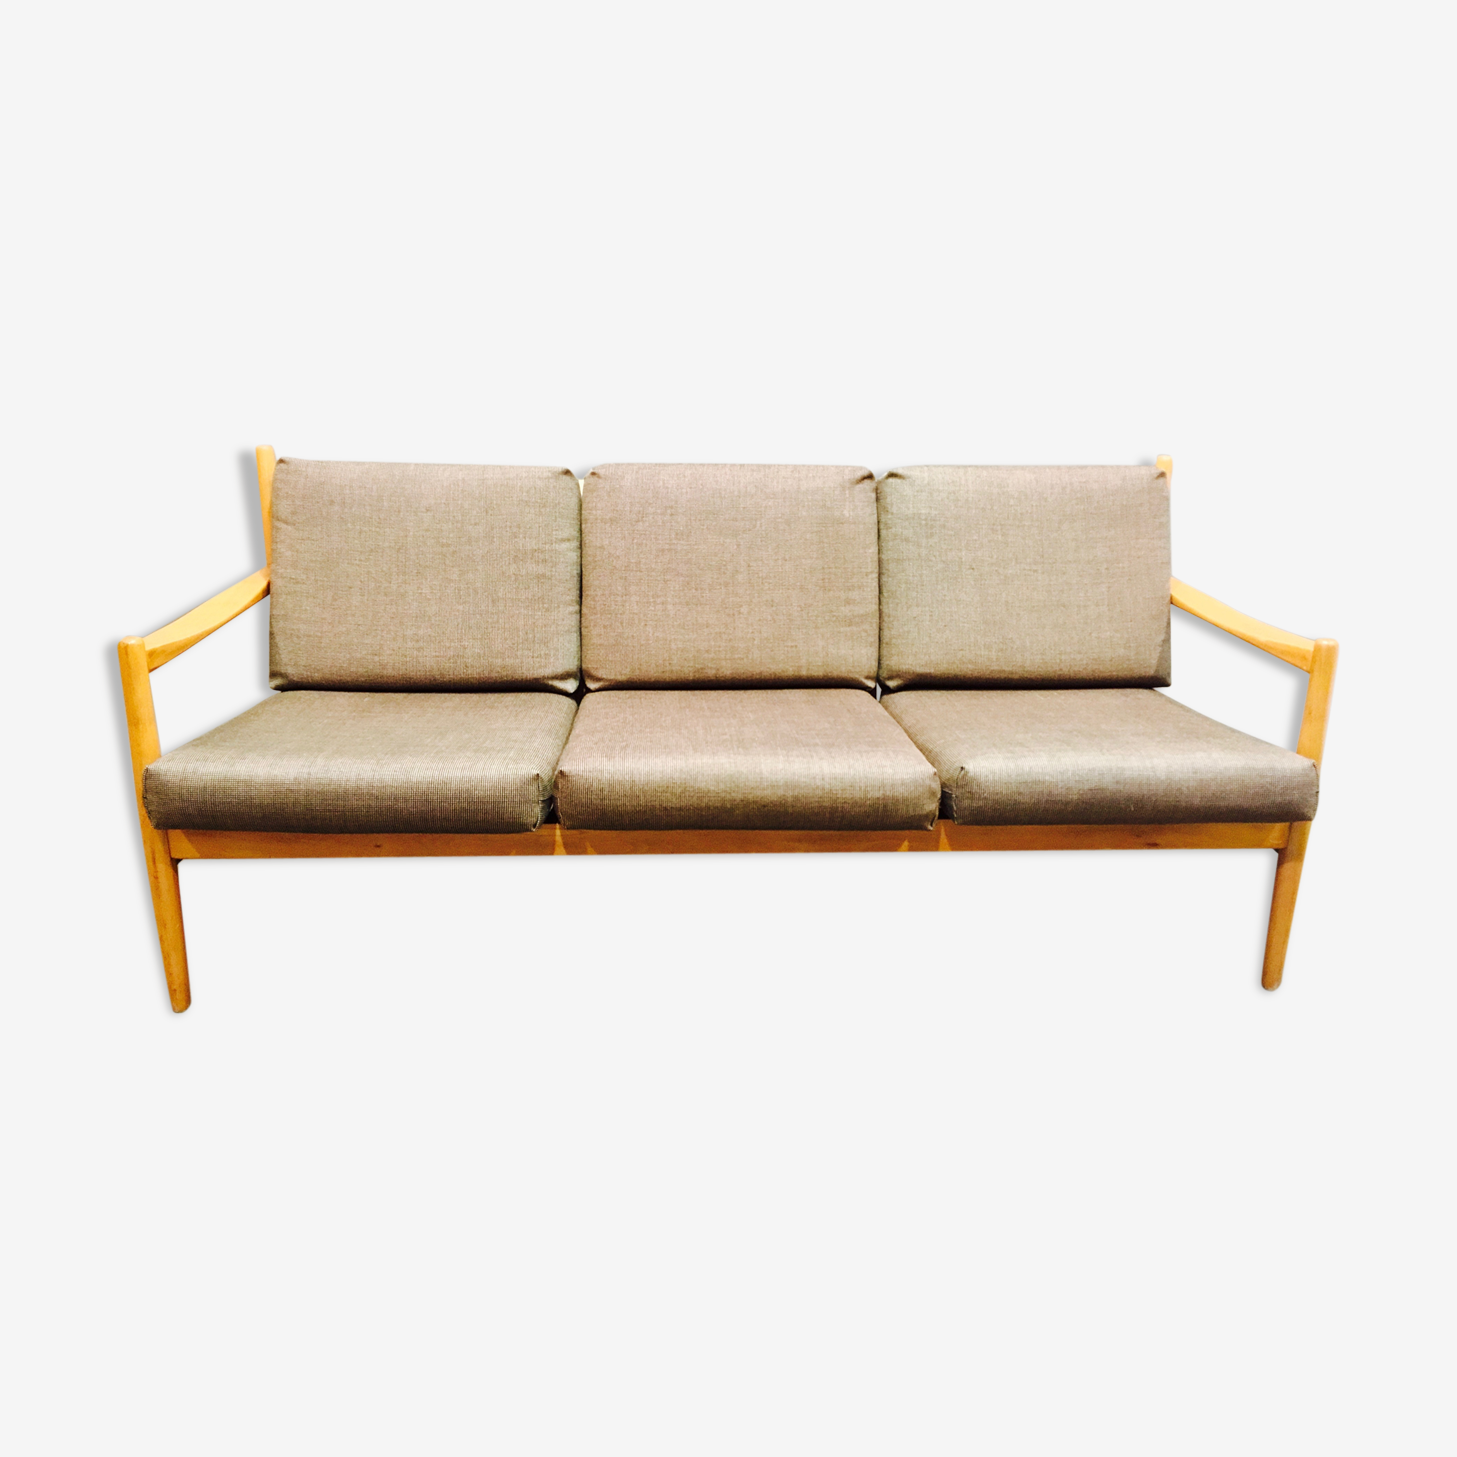 "Sofa 3 places ""Scandinavian design"" 1960."